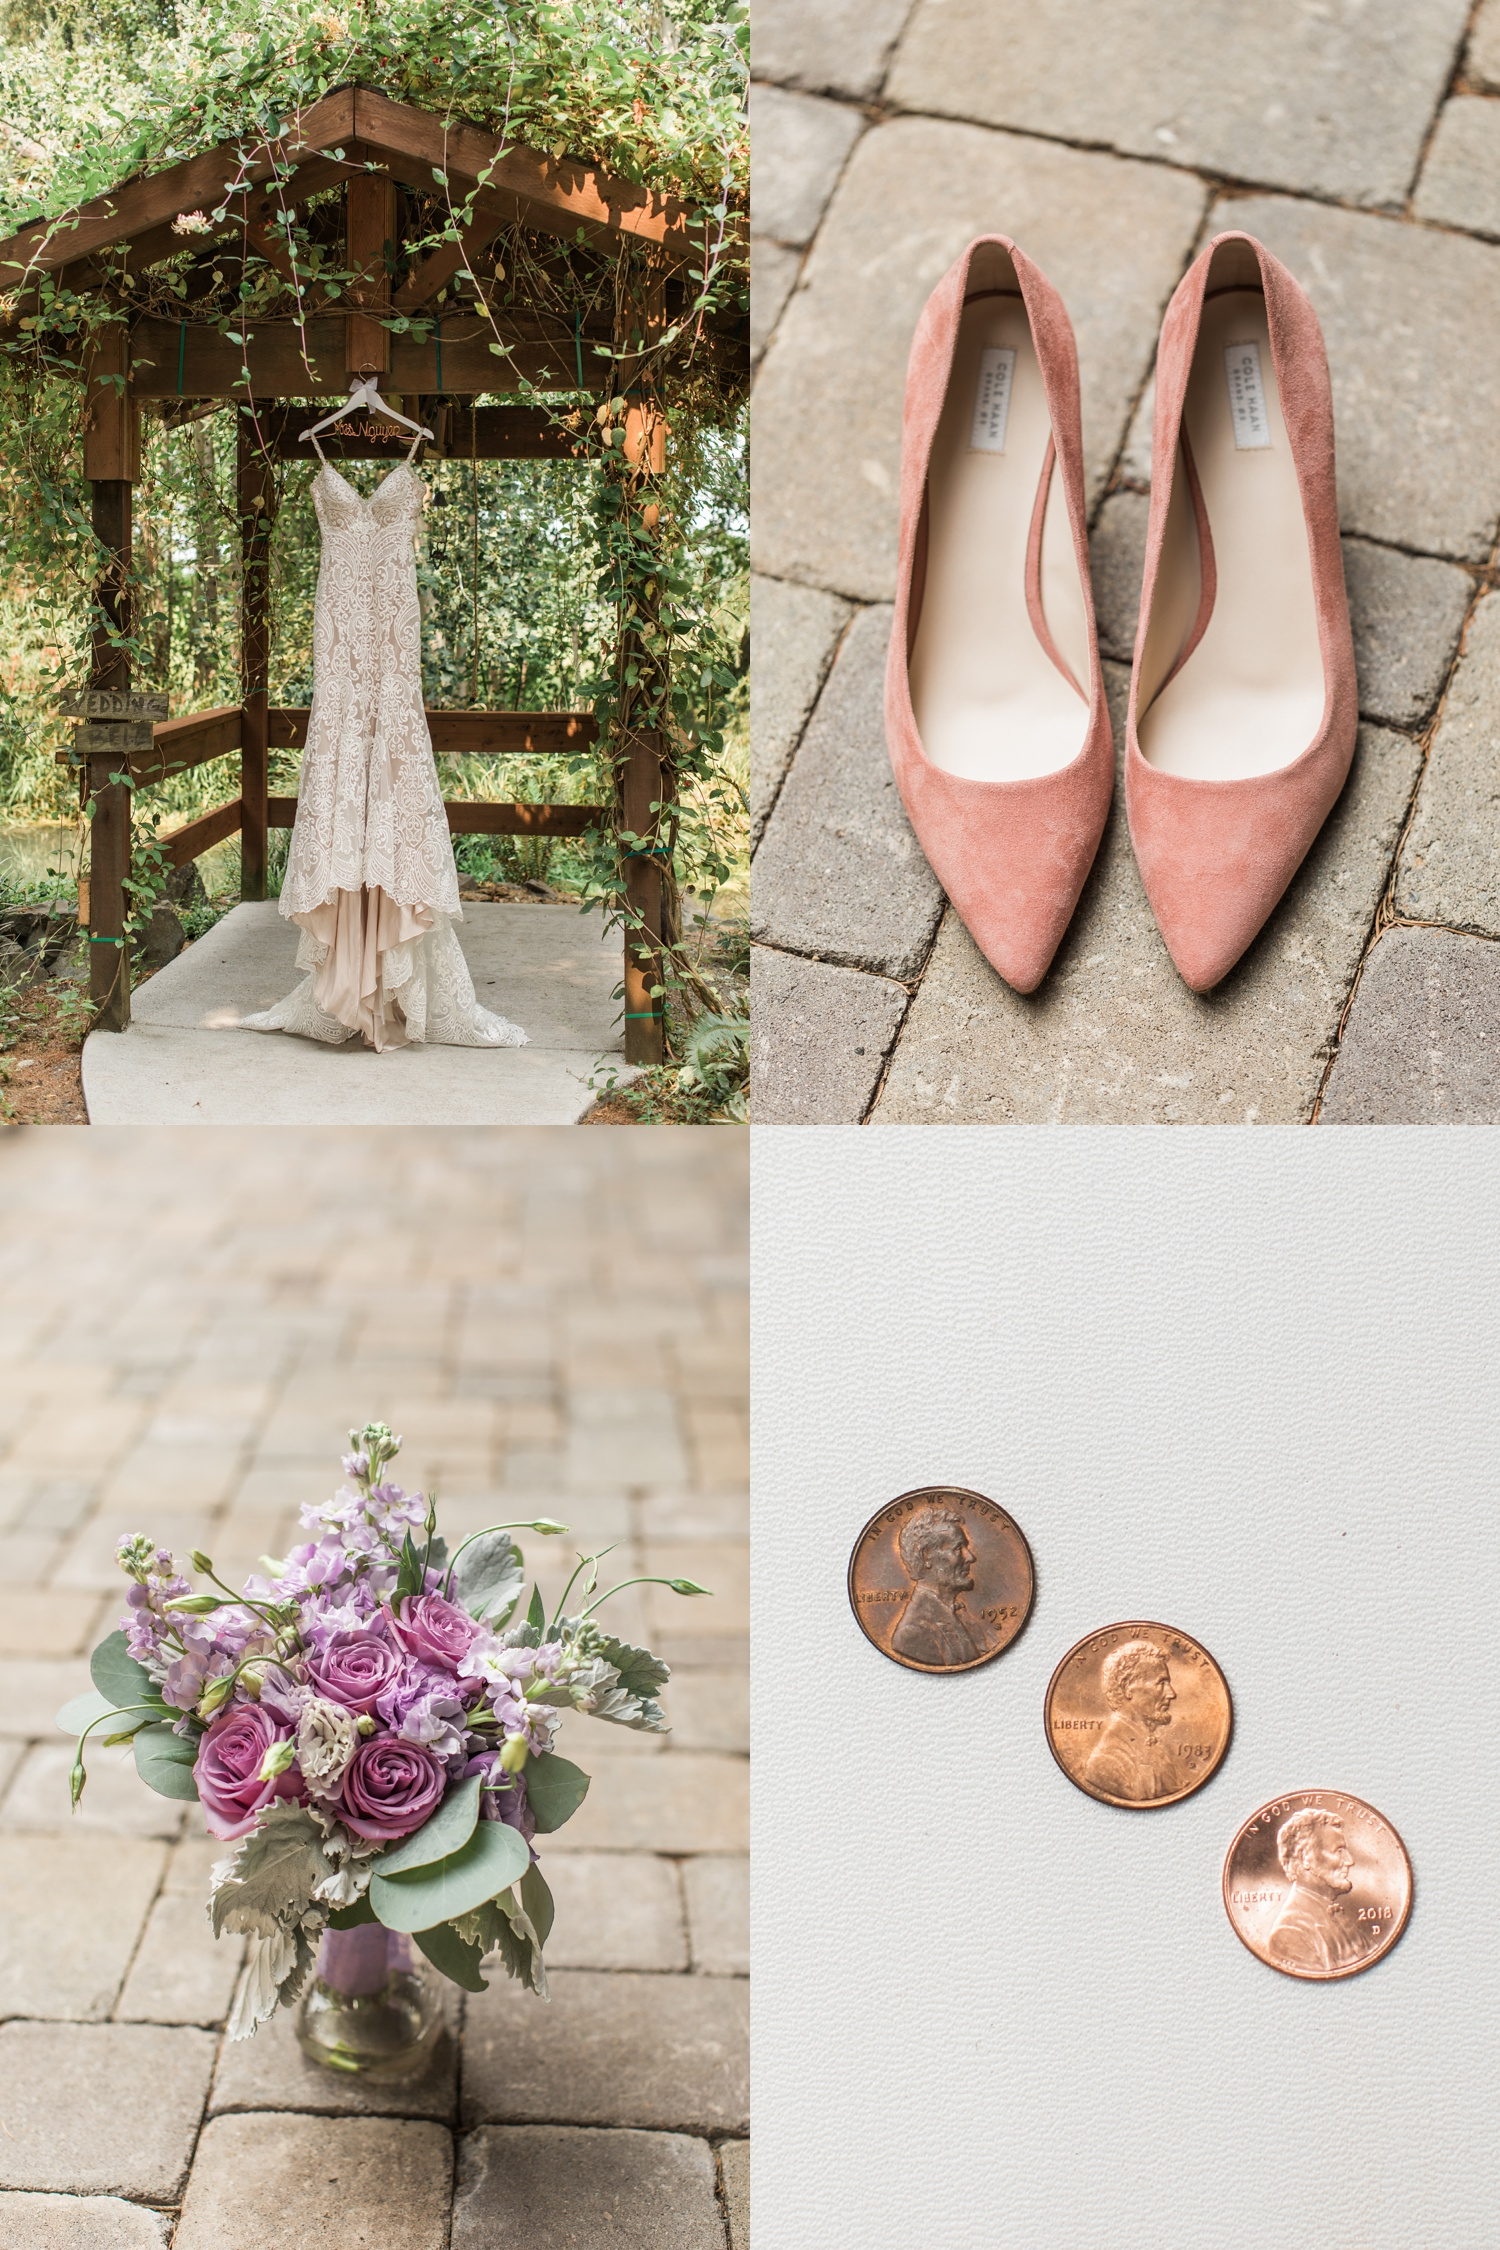 A hanging wedding dress, shoes, and a bridal bouquet for a wedding at Woodland Meadow Farms in Snohomish, a wedding venue near Seattle, WA. | Joanna Monger Photography | Seattle & Snohomish Photographer